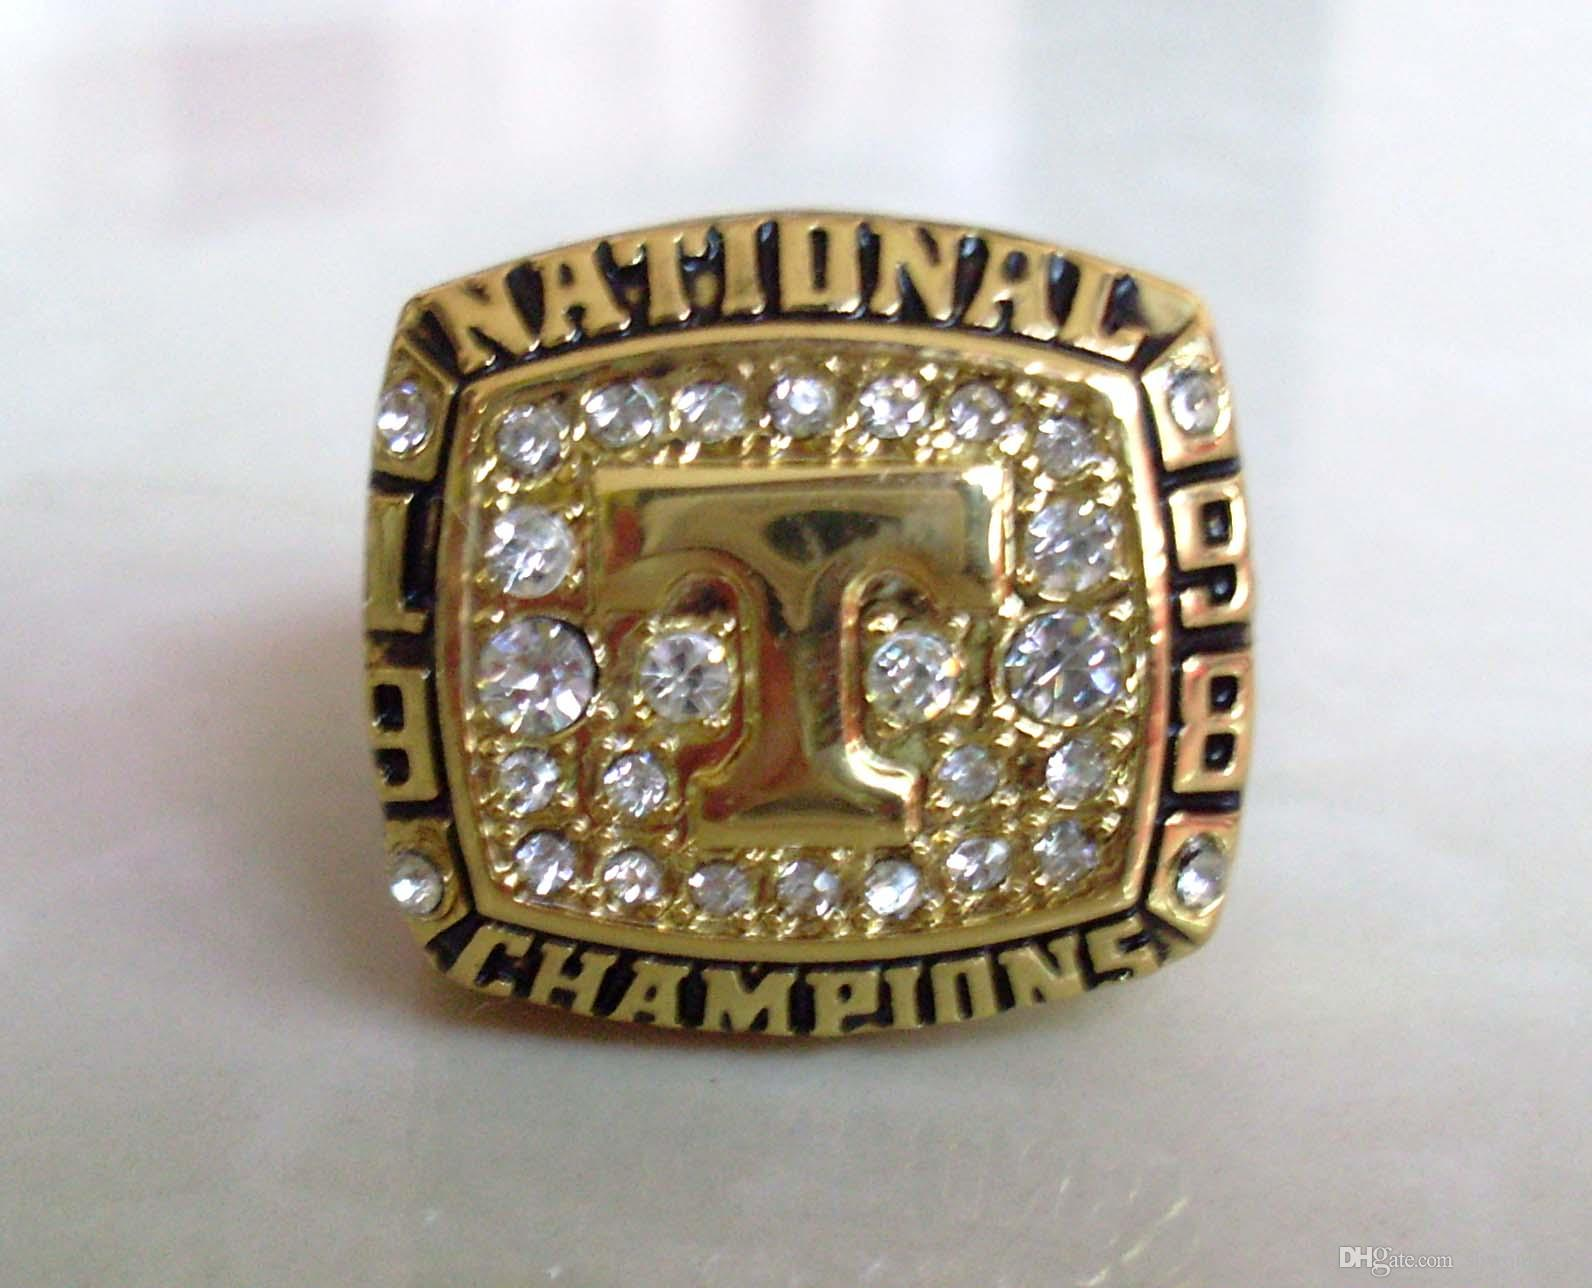 Defective 1998 Tenneesee Cates Collge Football National Championship Ring Size 11 Gold